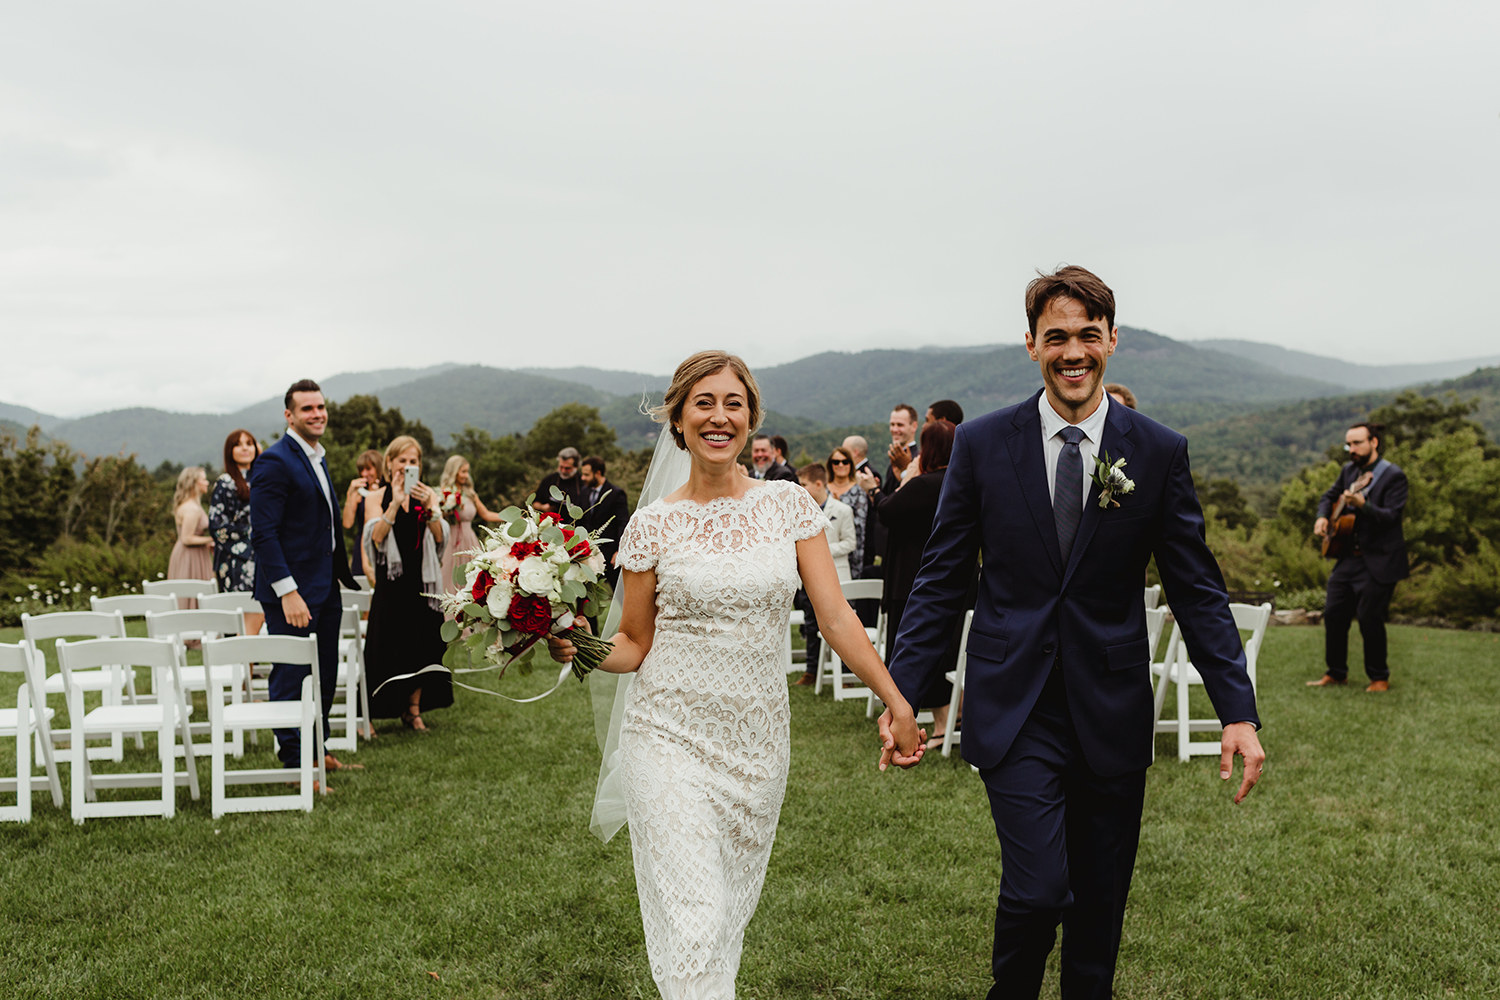 Trillium links & lake club wedding in cashiers, north carolina - beautiful outdoor mountaintop wedding ceremony